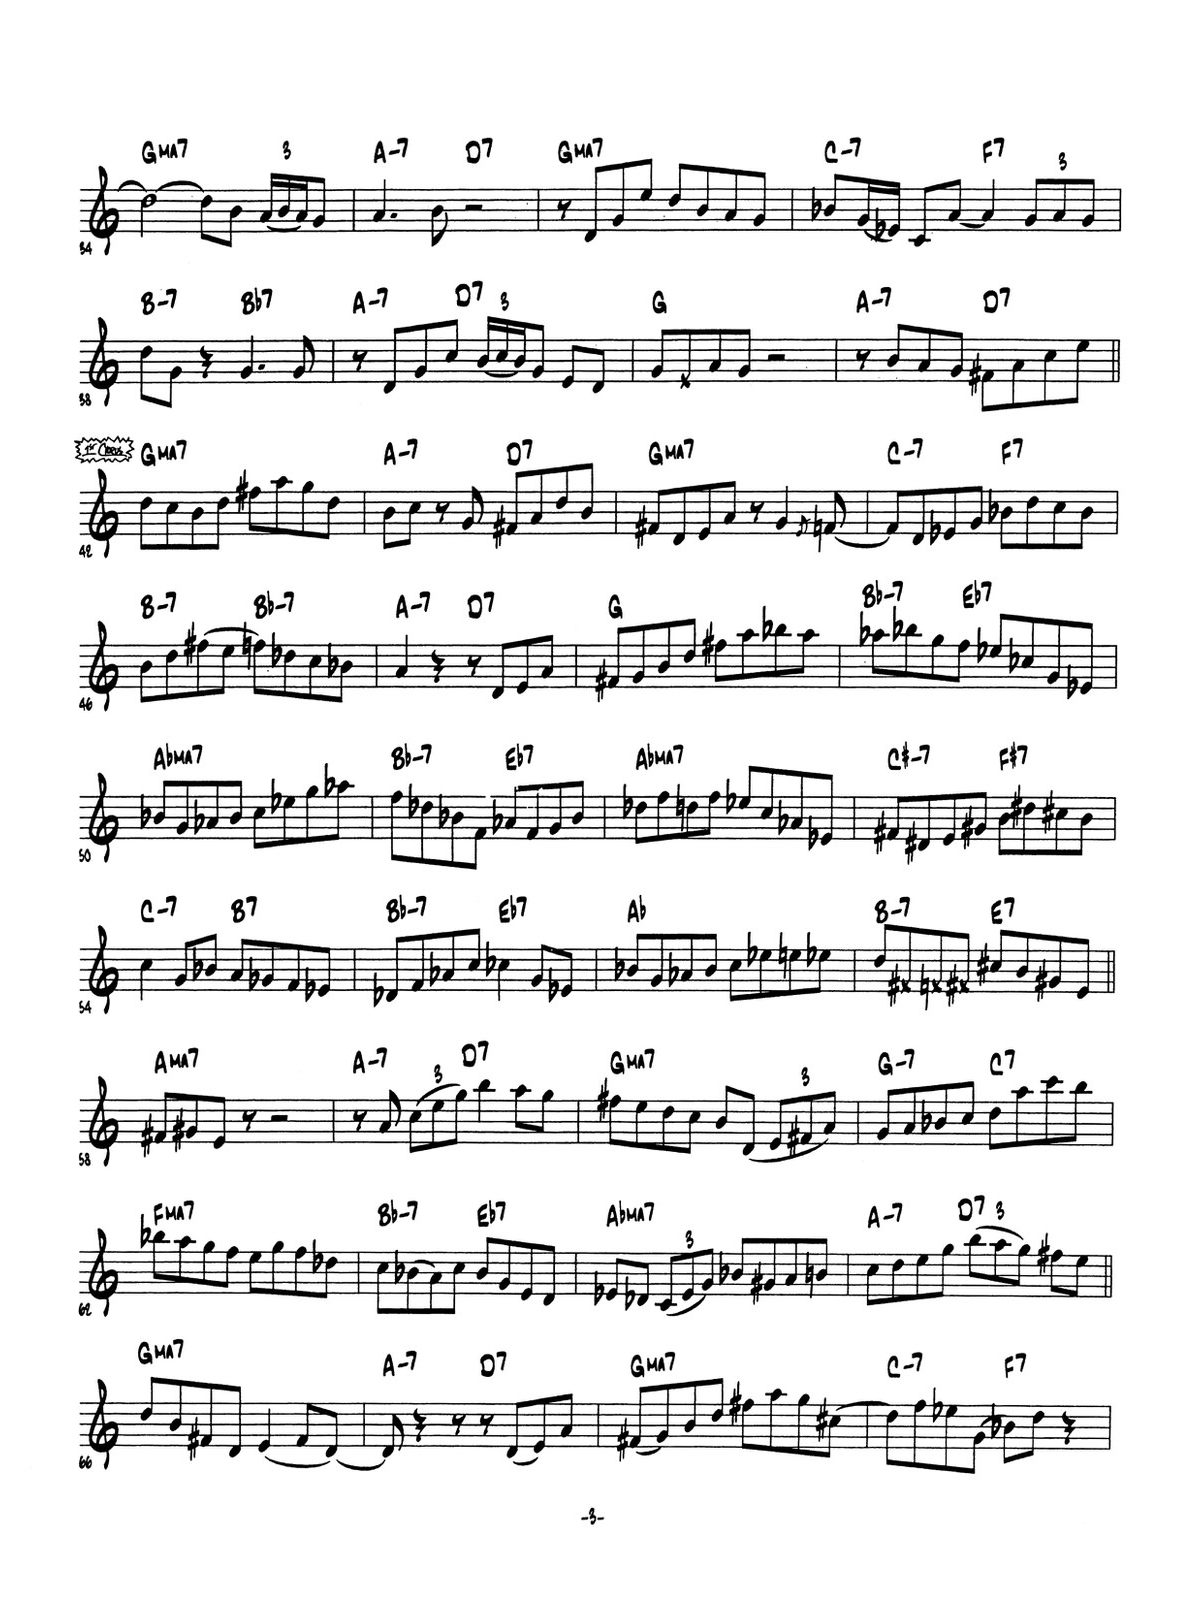 Harrell, Trumpet Transcriptions-p07